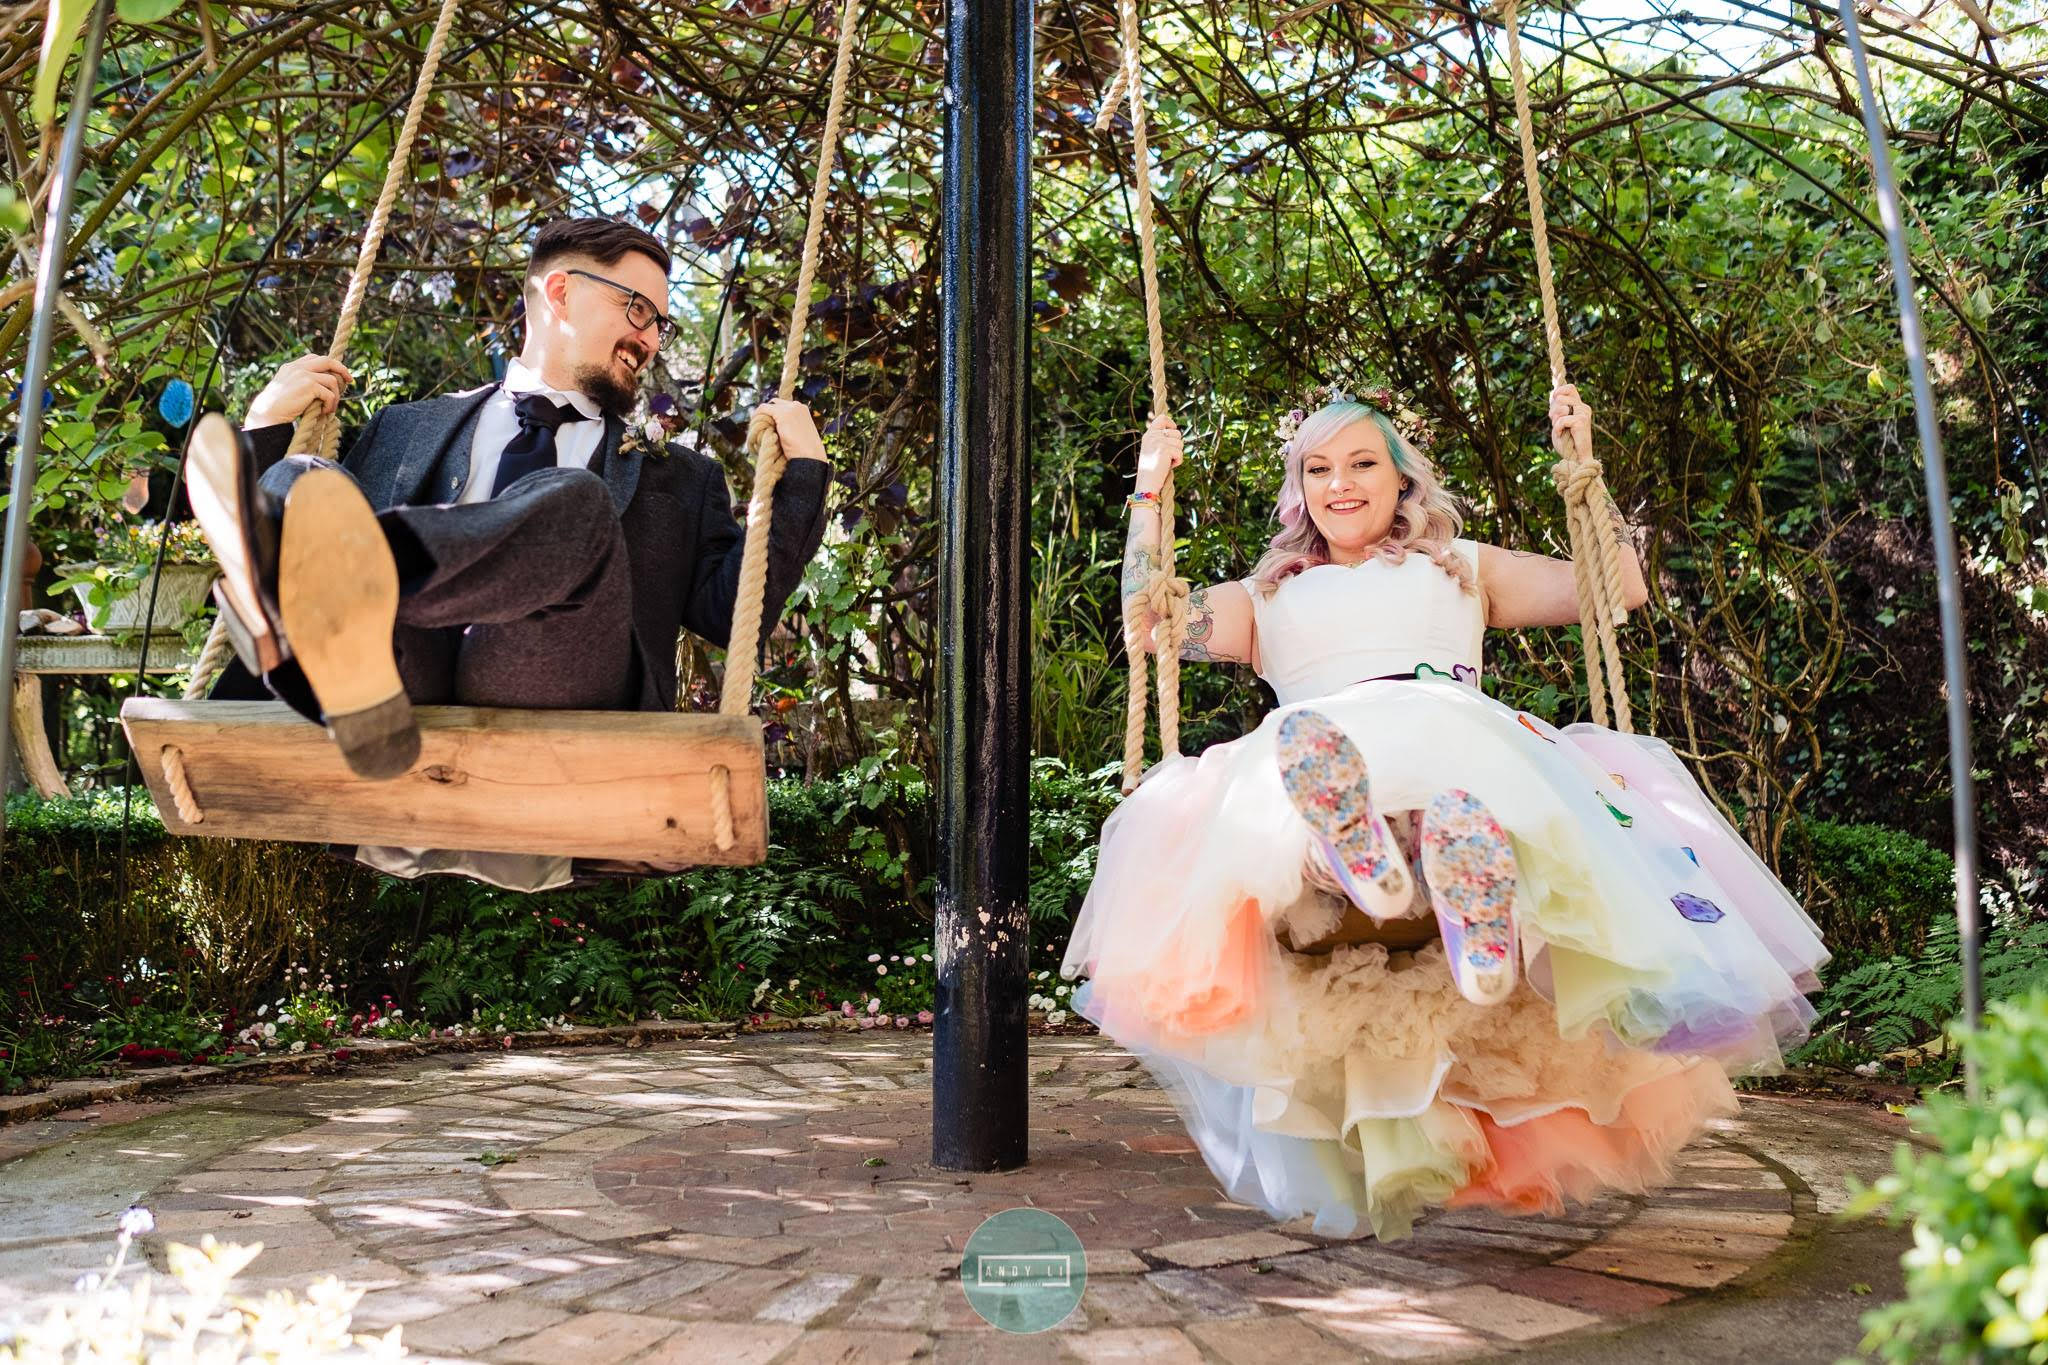 rainbow wedding themed wedding dress by the little wedding shop - colourful wedding inspiration - couple on swings - rainbow tulle layers - bespoke wedding dress inspiration with dice and irregular choice shoes